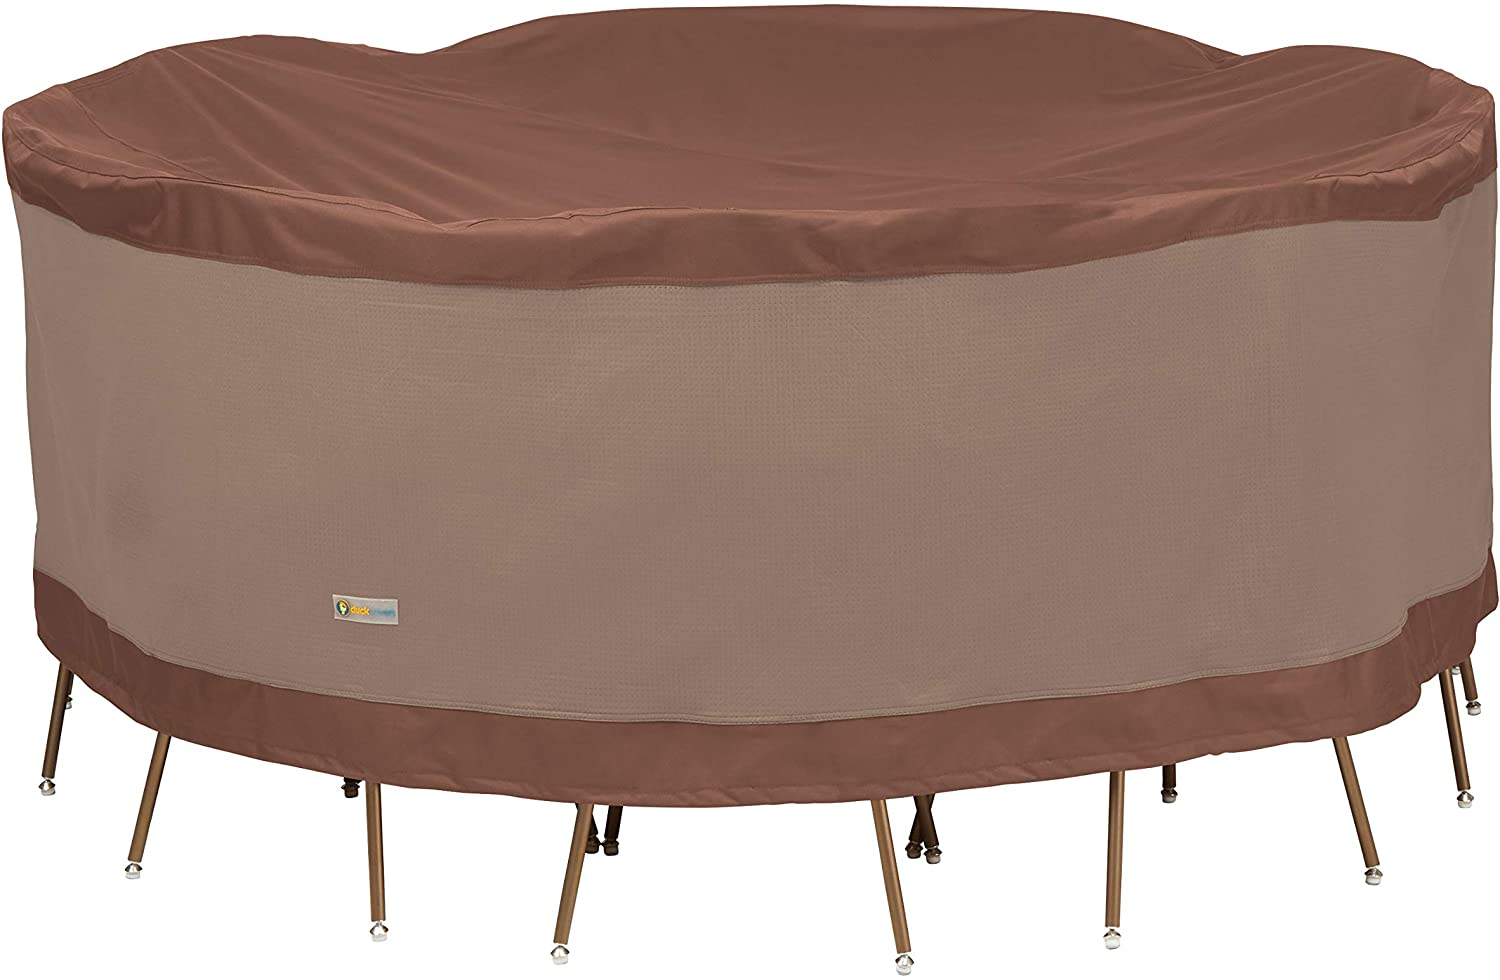 Duck Covers Ultimate Round Patio Table with Chairs Cover, 90-Inch